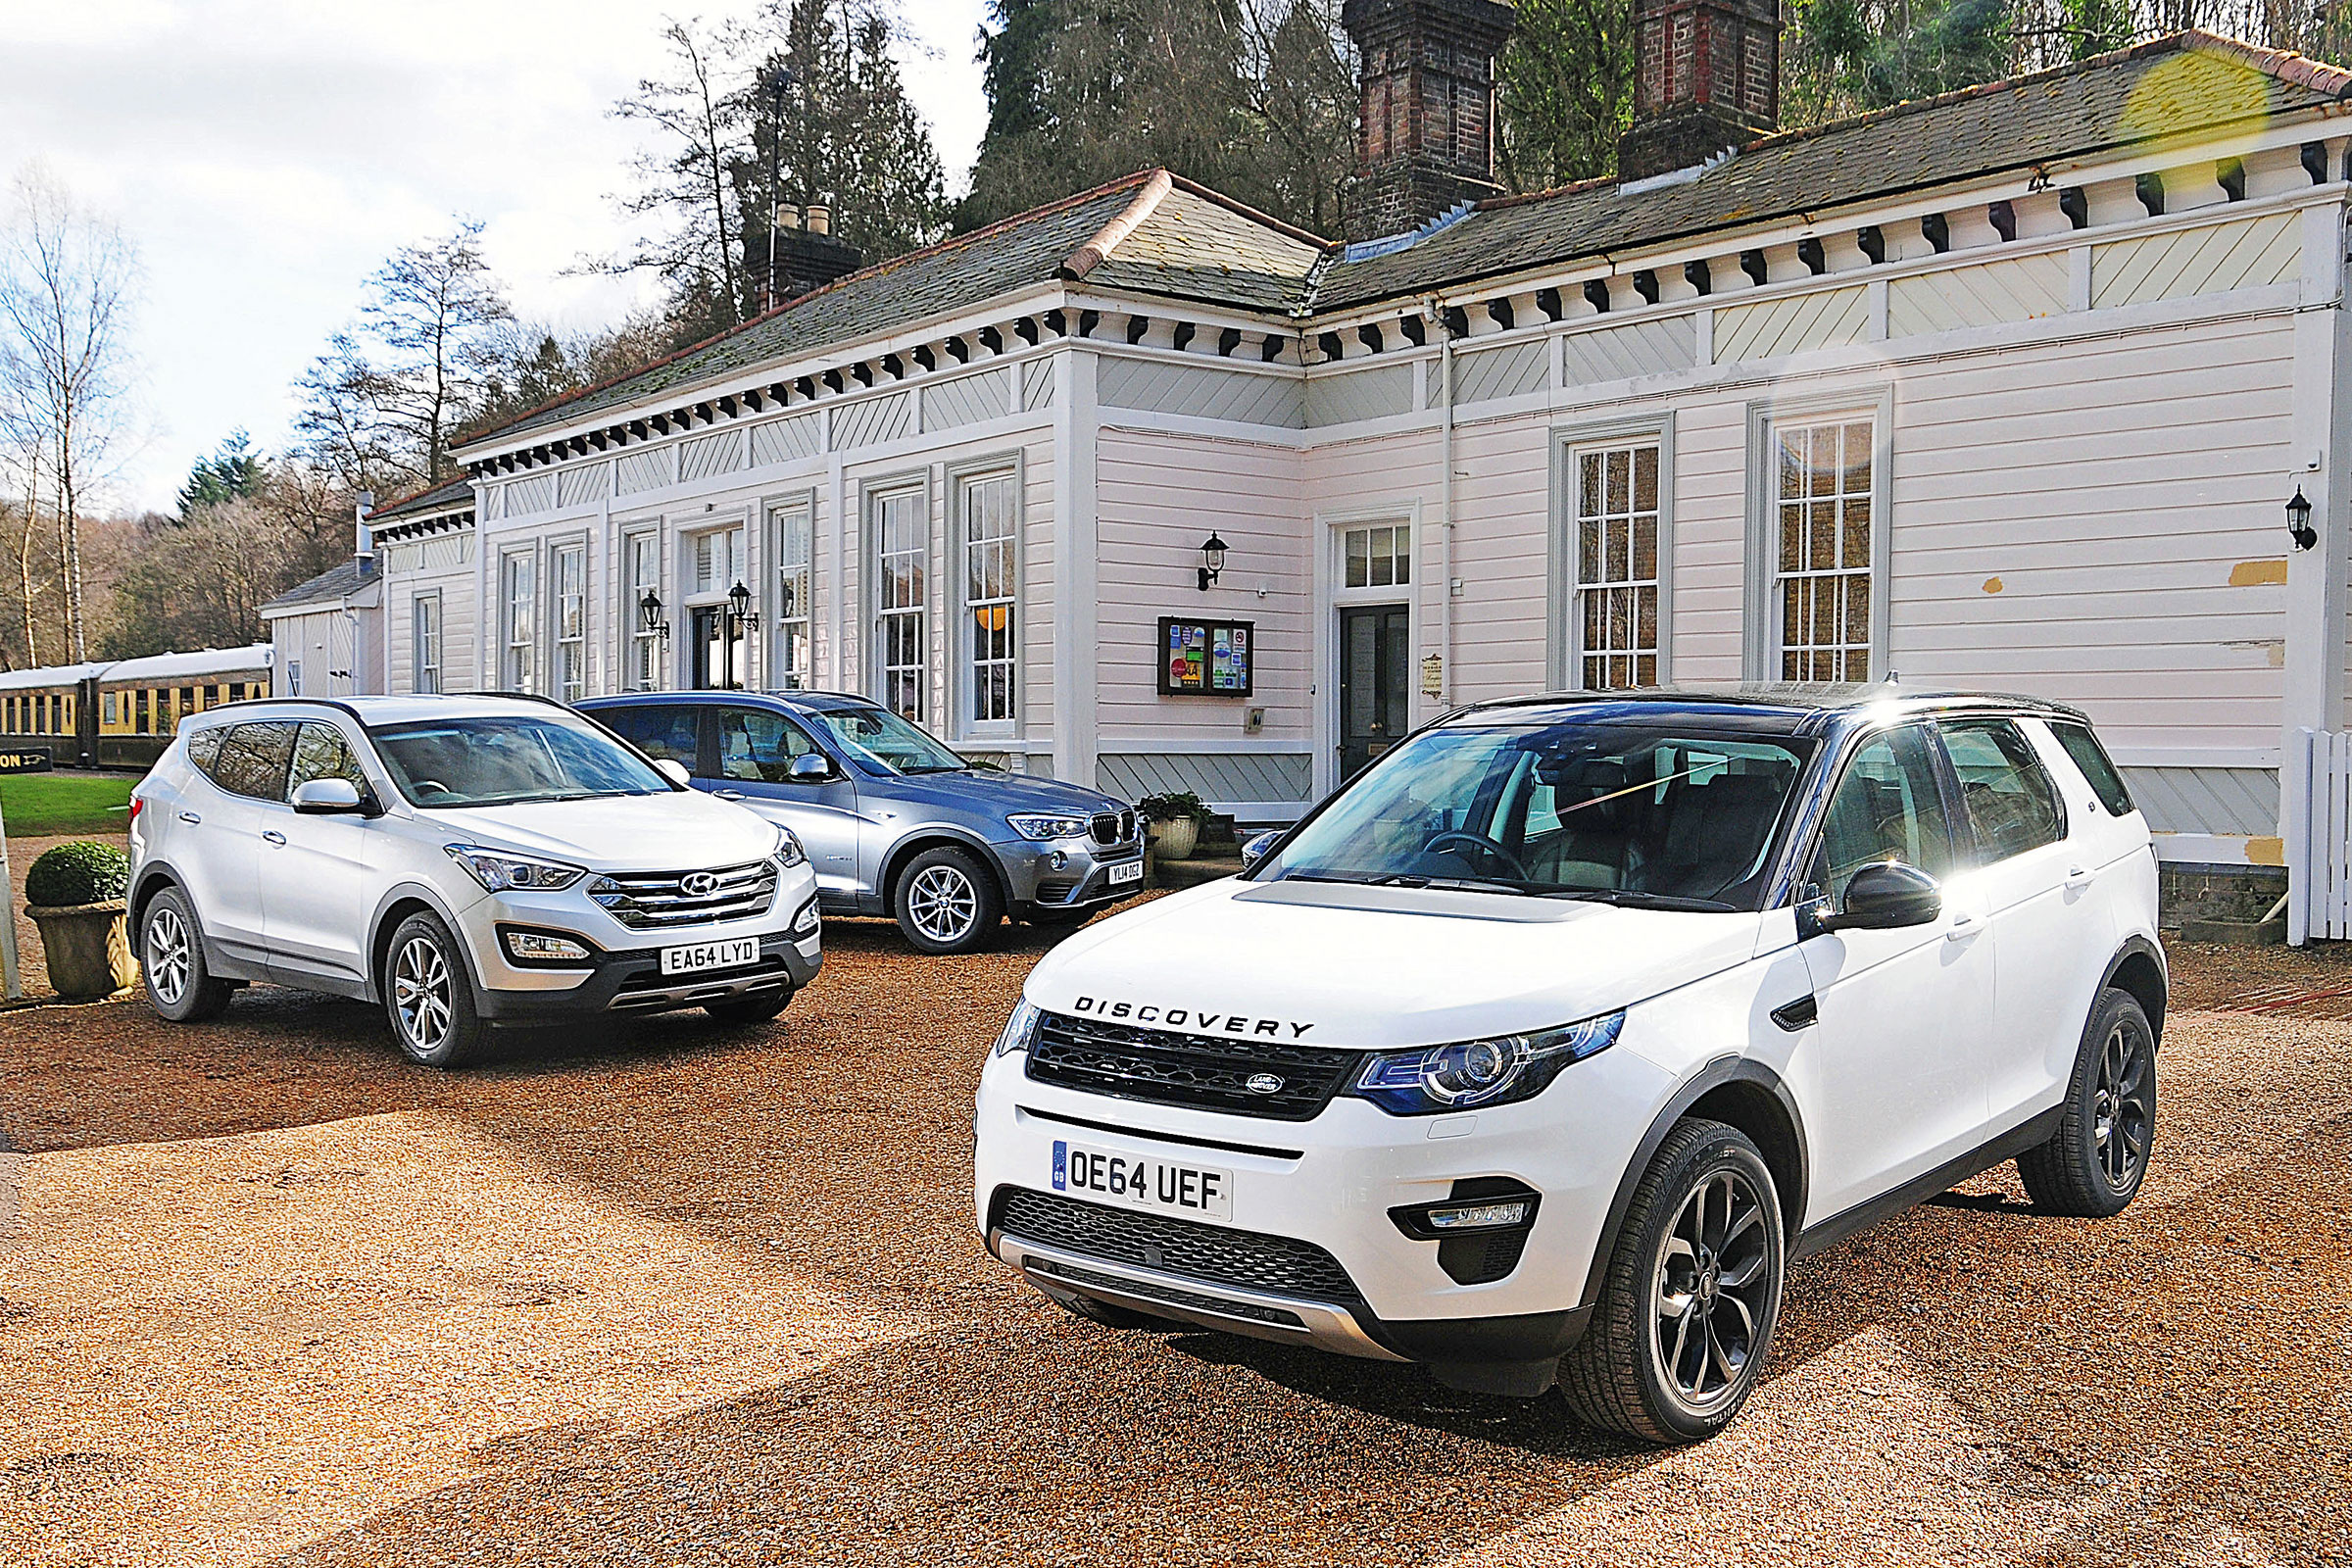 Discovery V Tow Bar Discovery Tow Bar Landrover Discovery V 2017 to present